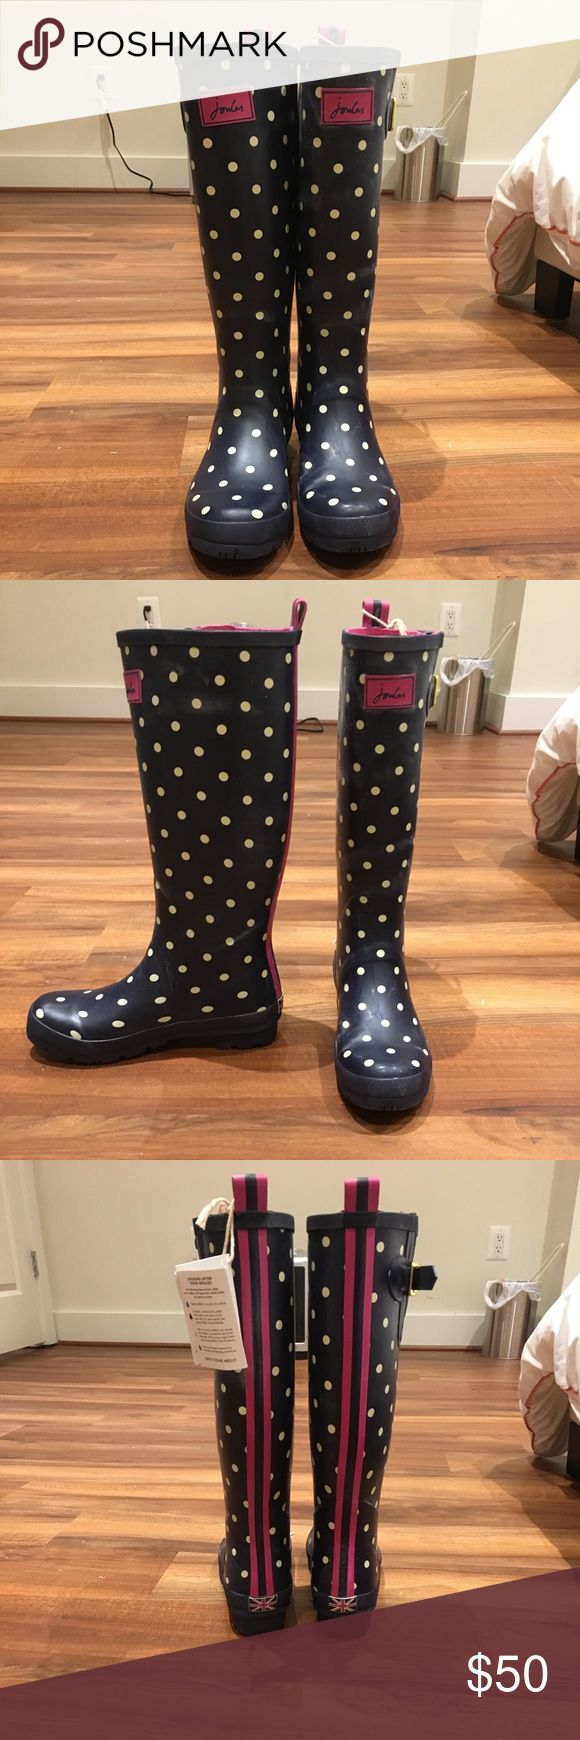 Joules Size 9 Wellies Navy blue with white polka dots and hot pink accents. Never worn!!! Adjustable calf width. Joules Shoes Winter & Rain Boots